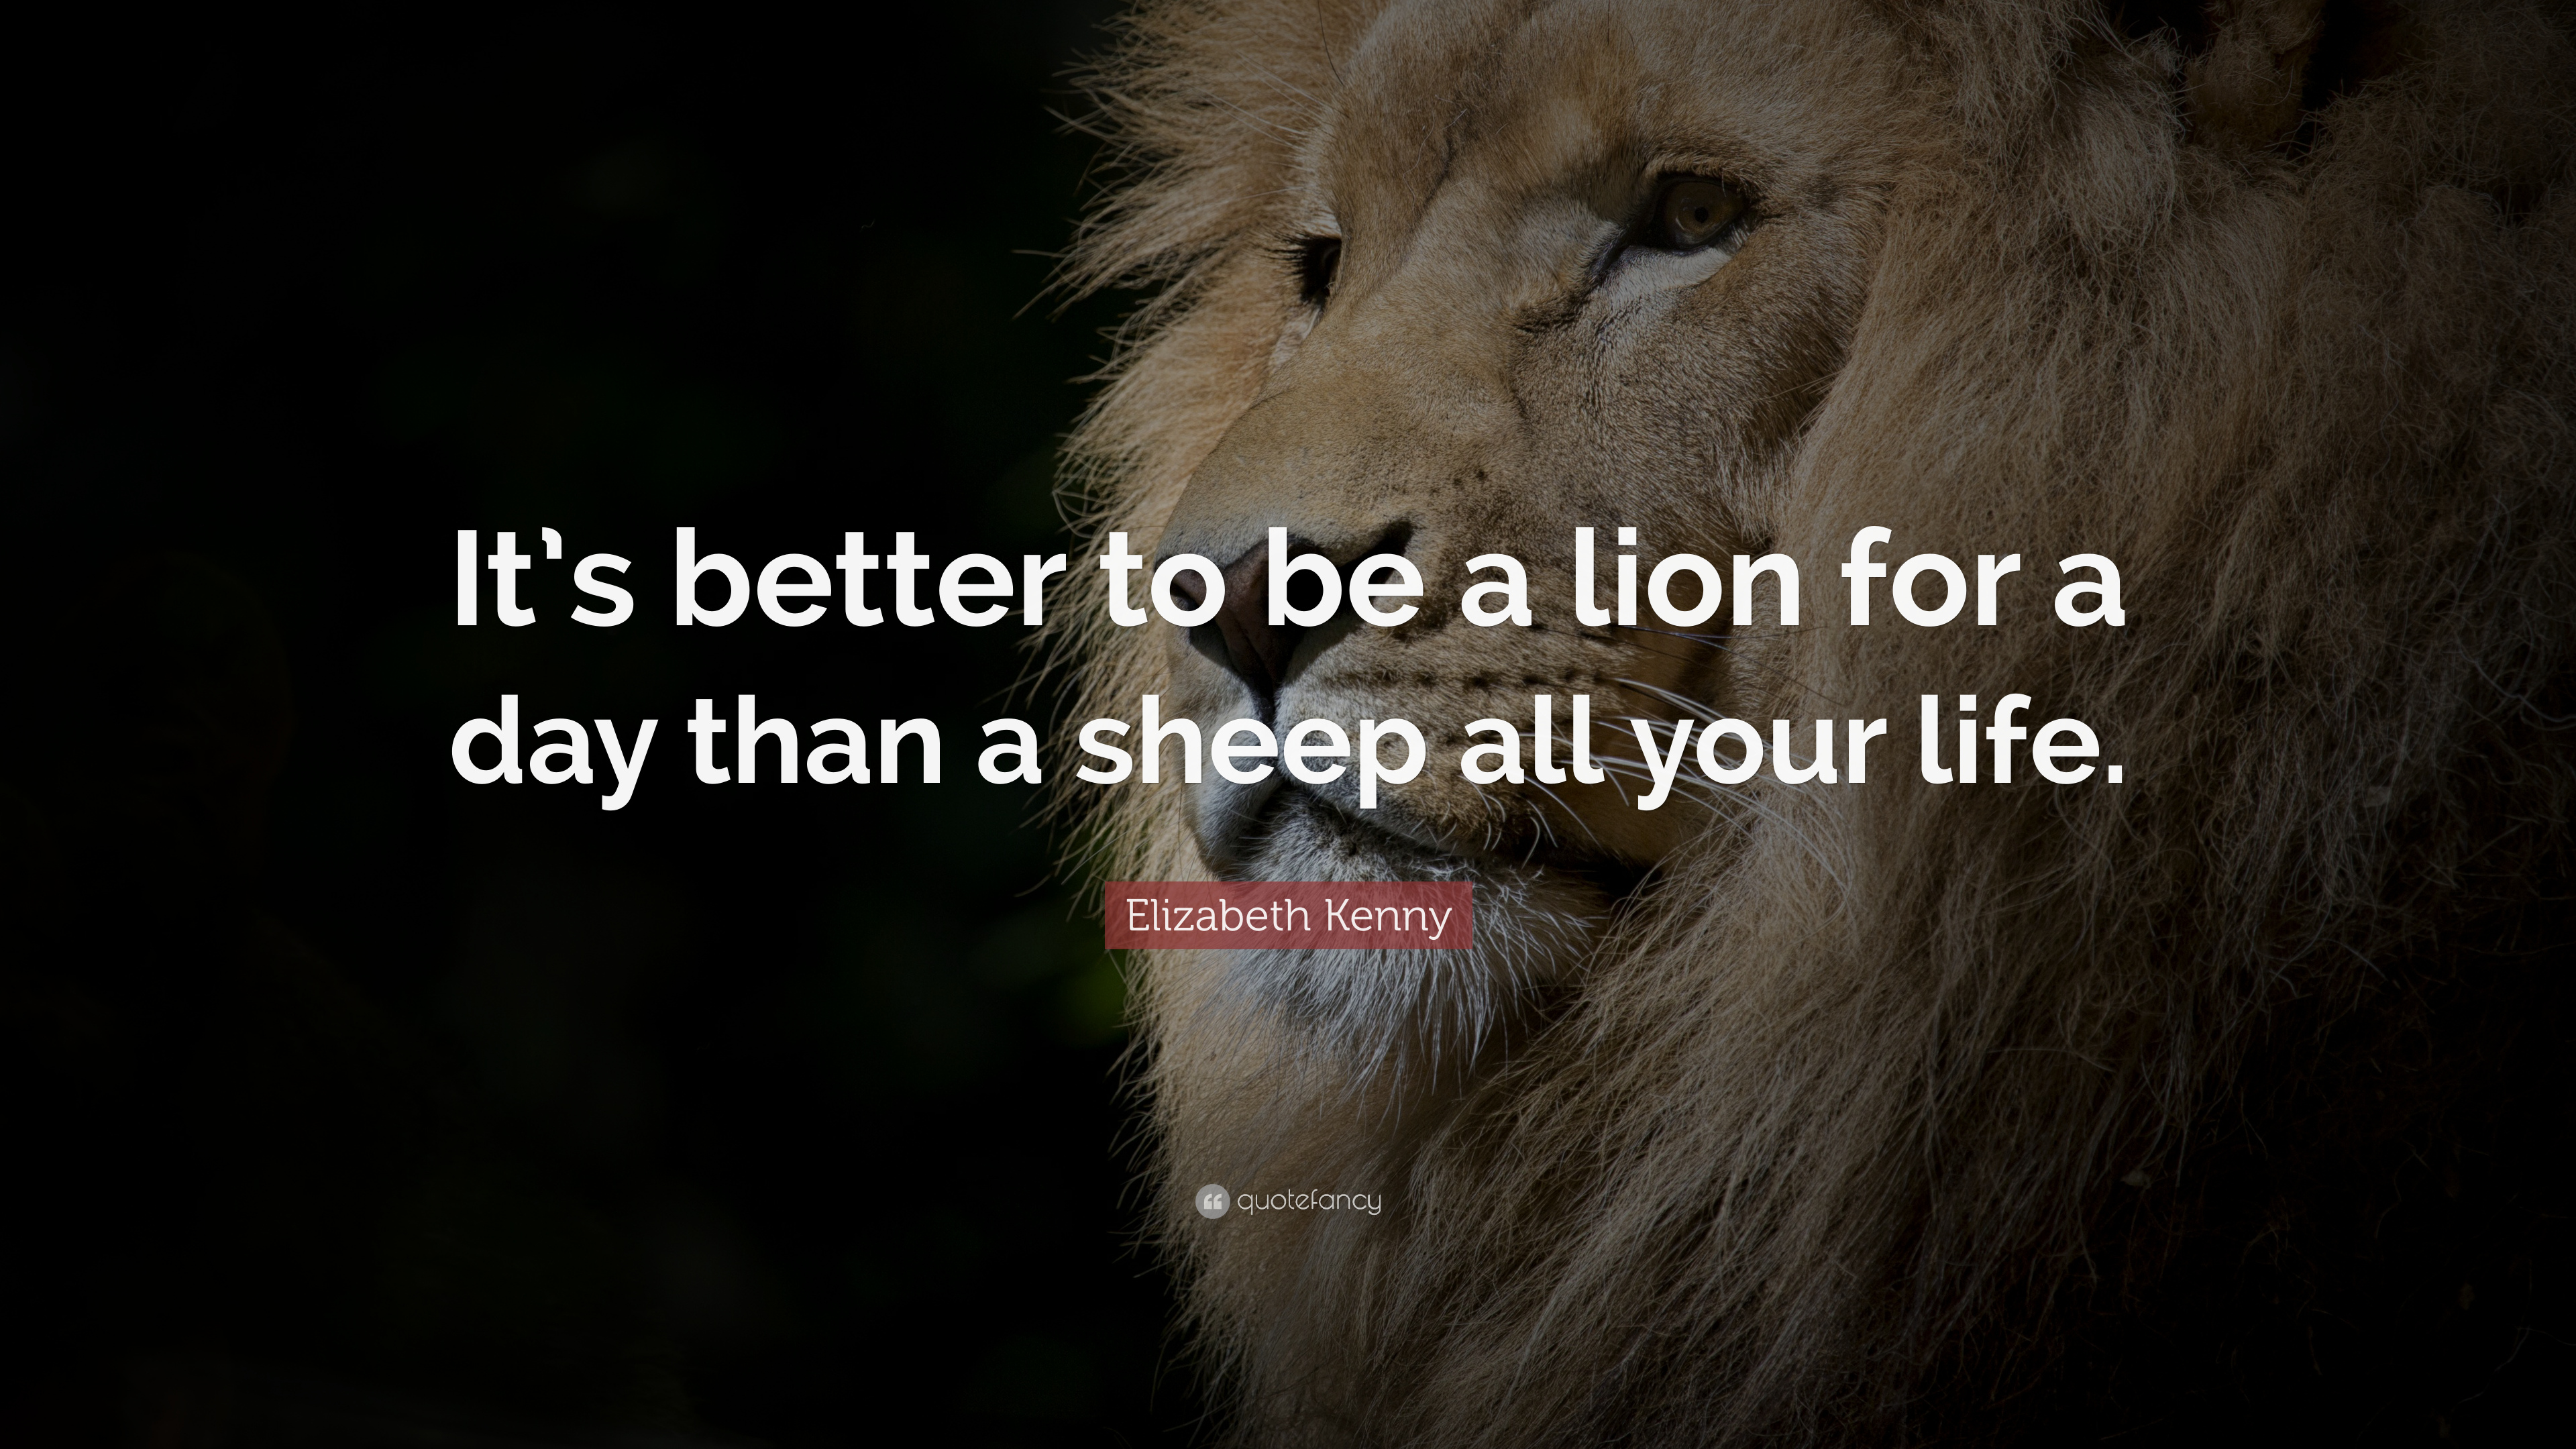 Awesome Life Quotes Lion